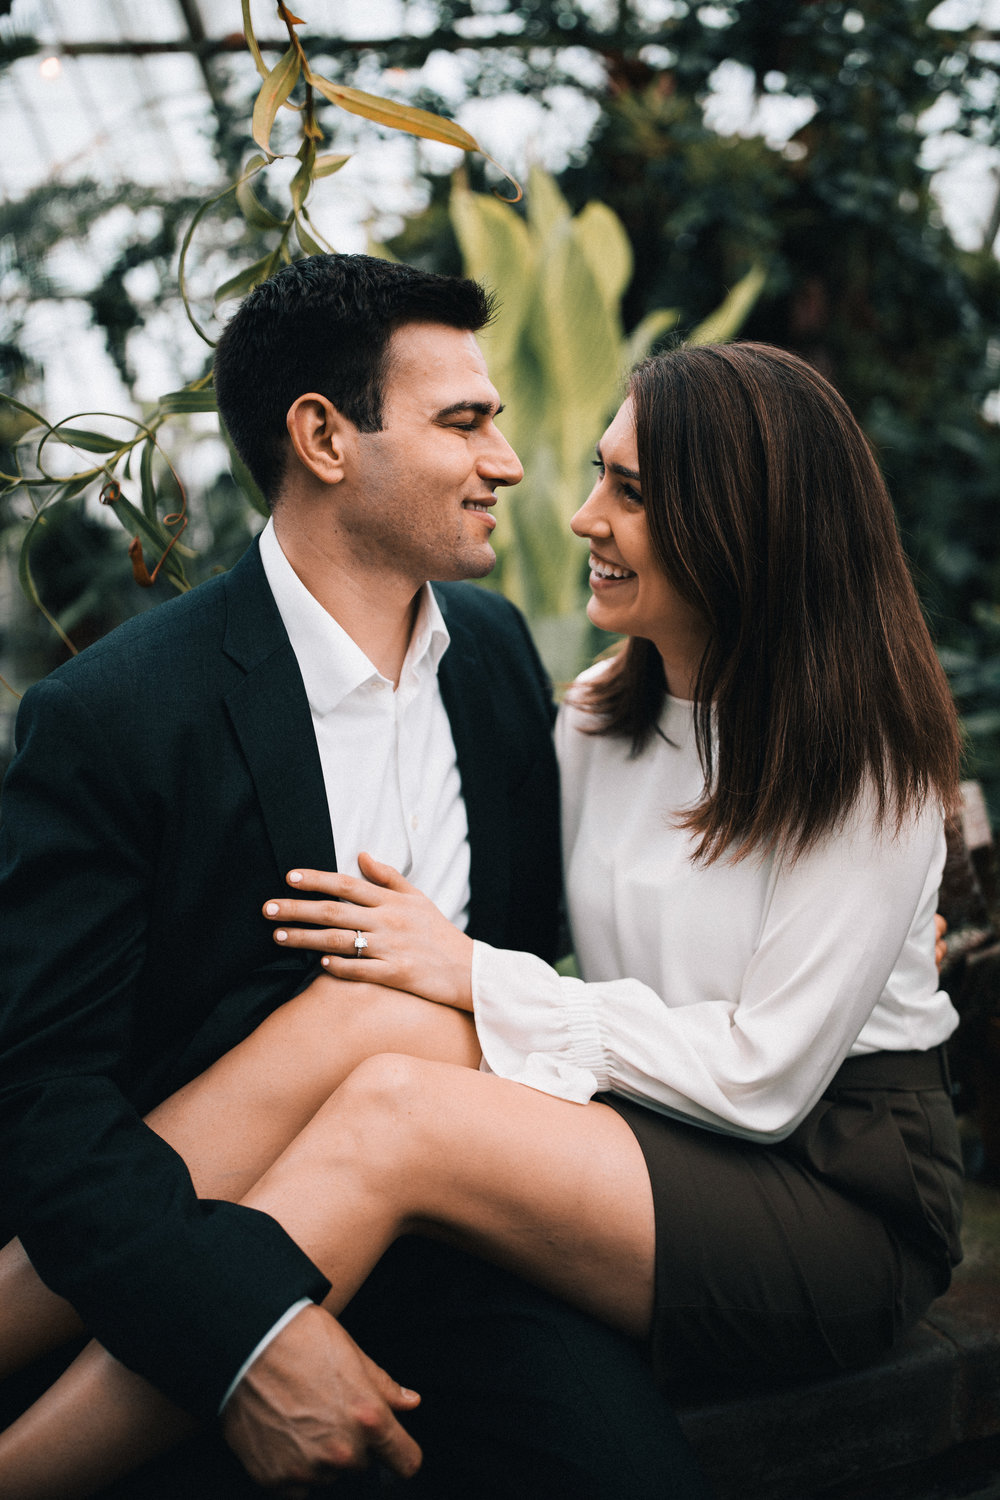 2019_04_ 072019.04.08 Ana and Richard Engagement Session Edited For Web 0018.jpg